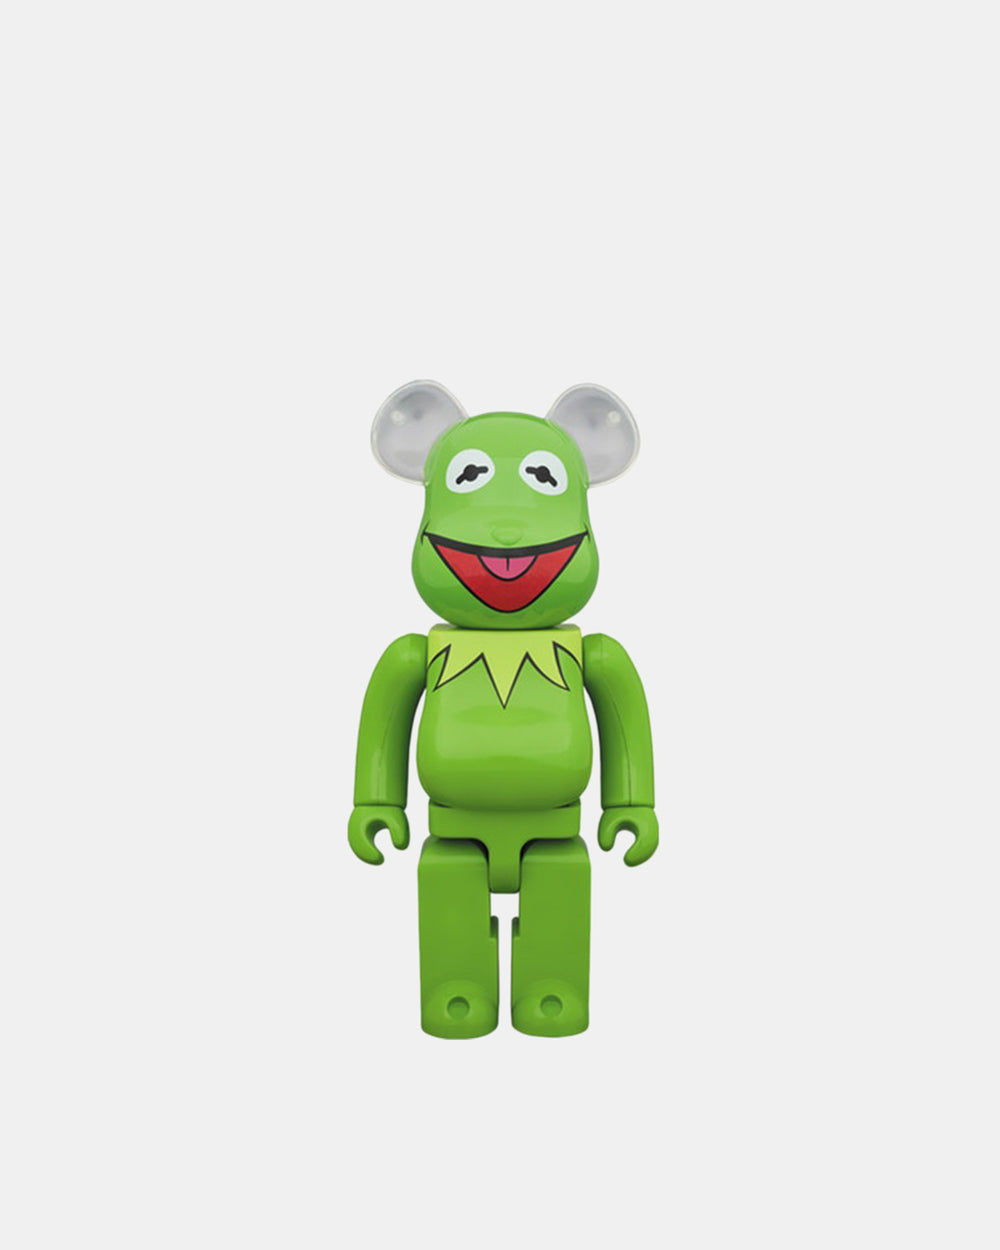 Medicom Toy - Meet the Muppets Kermit the Frog 1000% Be@rbrick (Green)